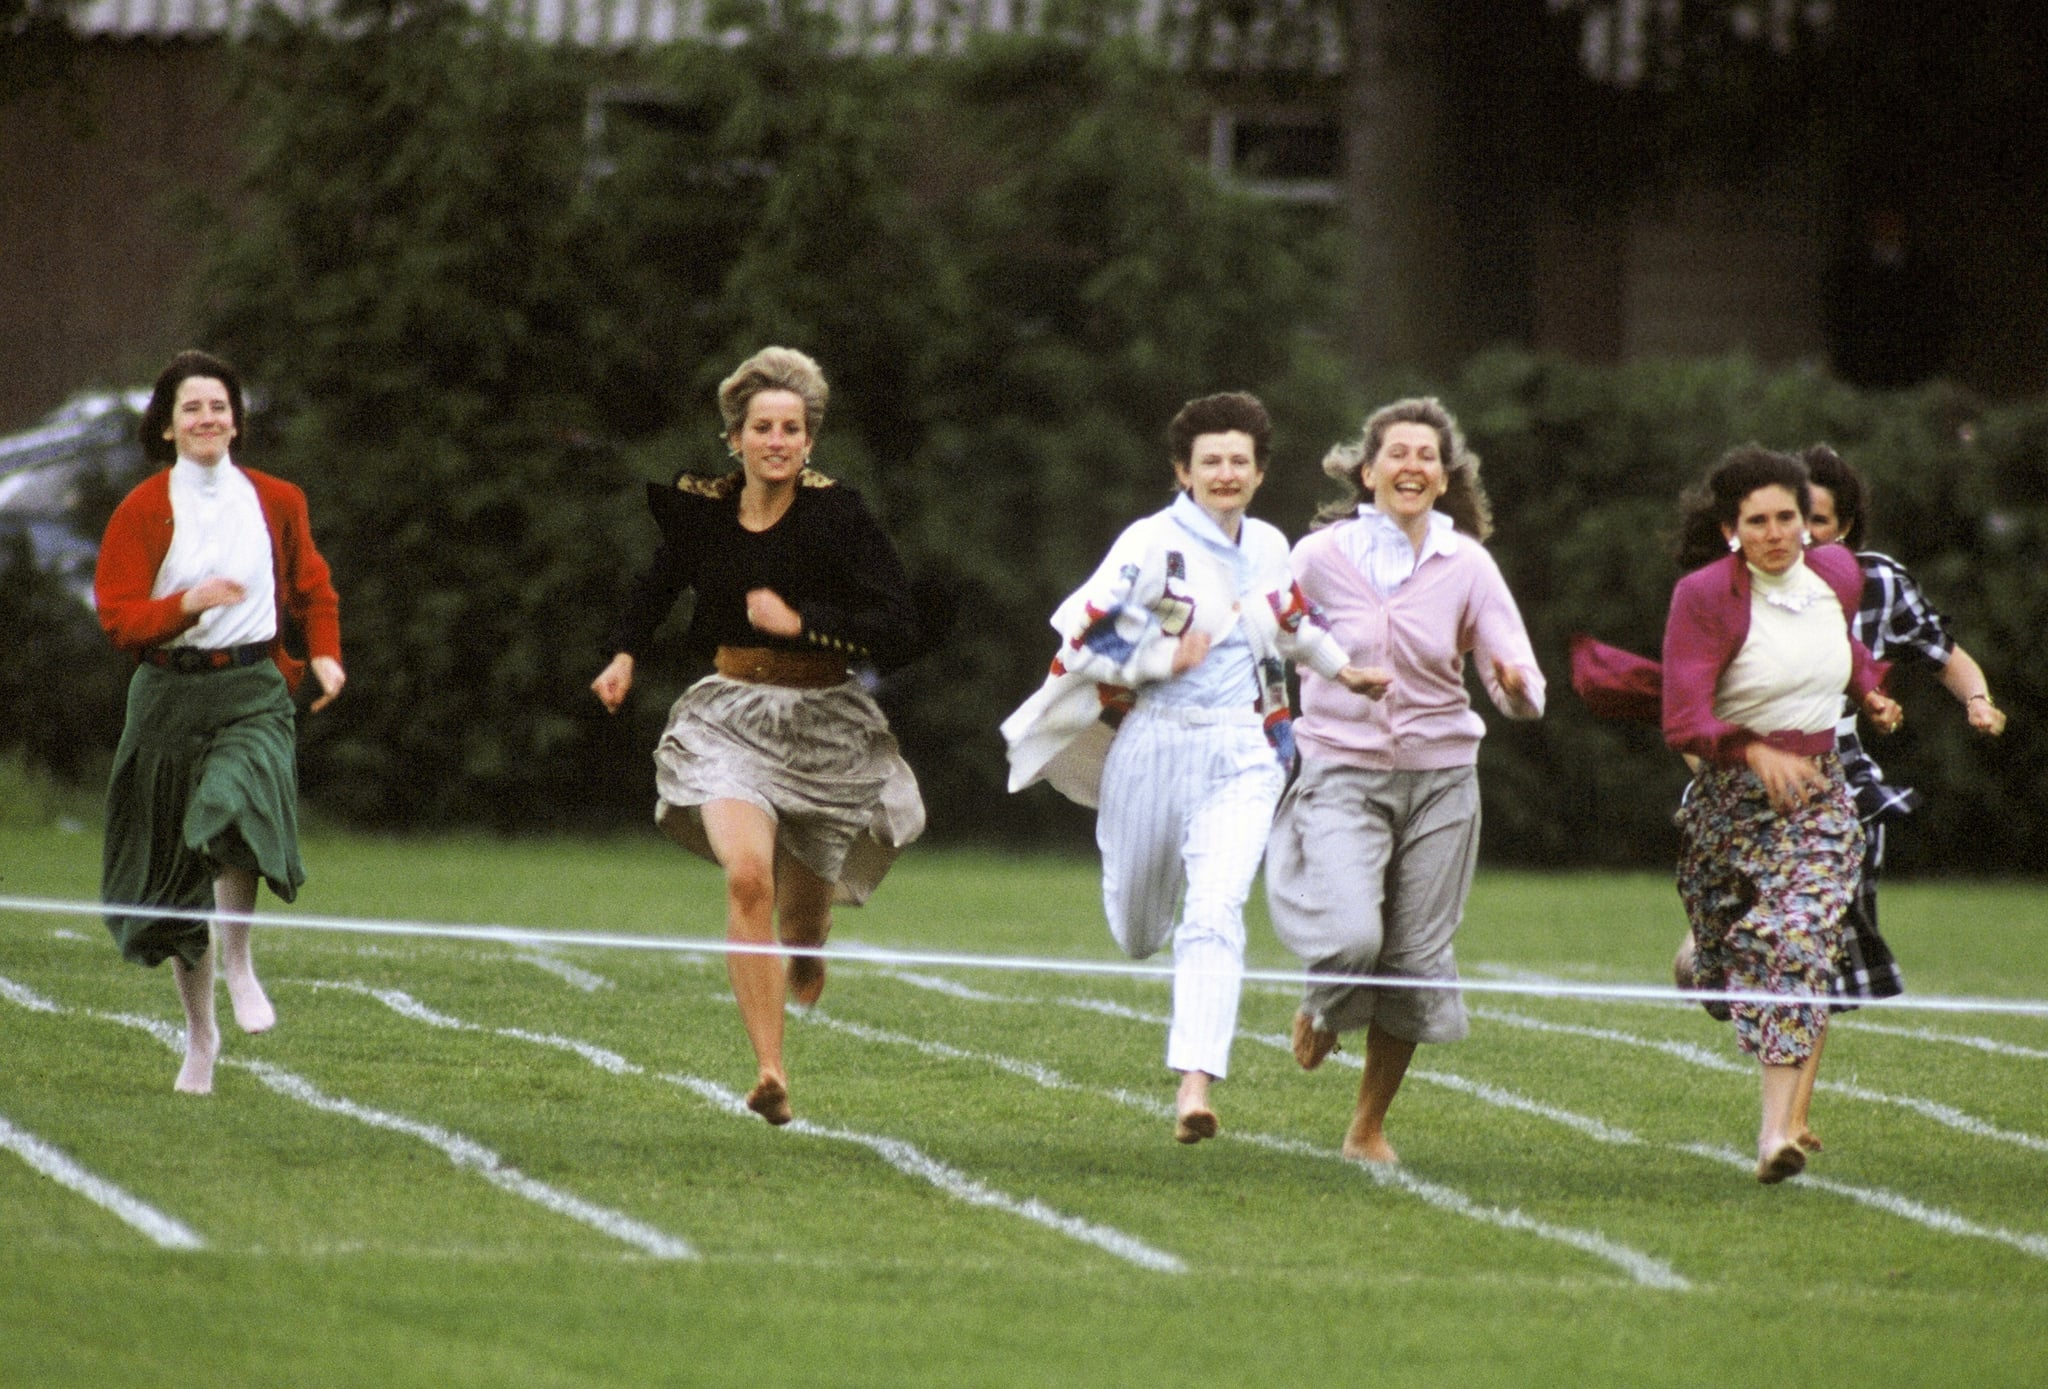 ENGLAND - 1991:  Princess Diana, Princess of Wales, running in the mothers race on school Sports day in 1991 in England.  (Photo by Anwar Hussein/WireImage)